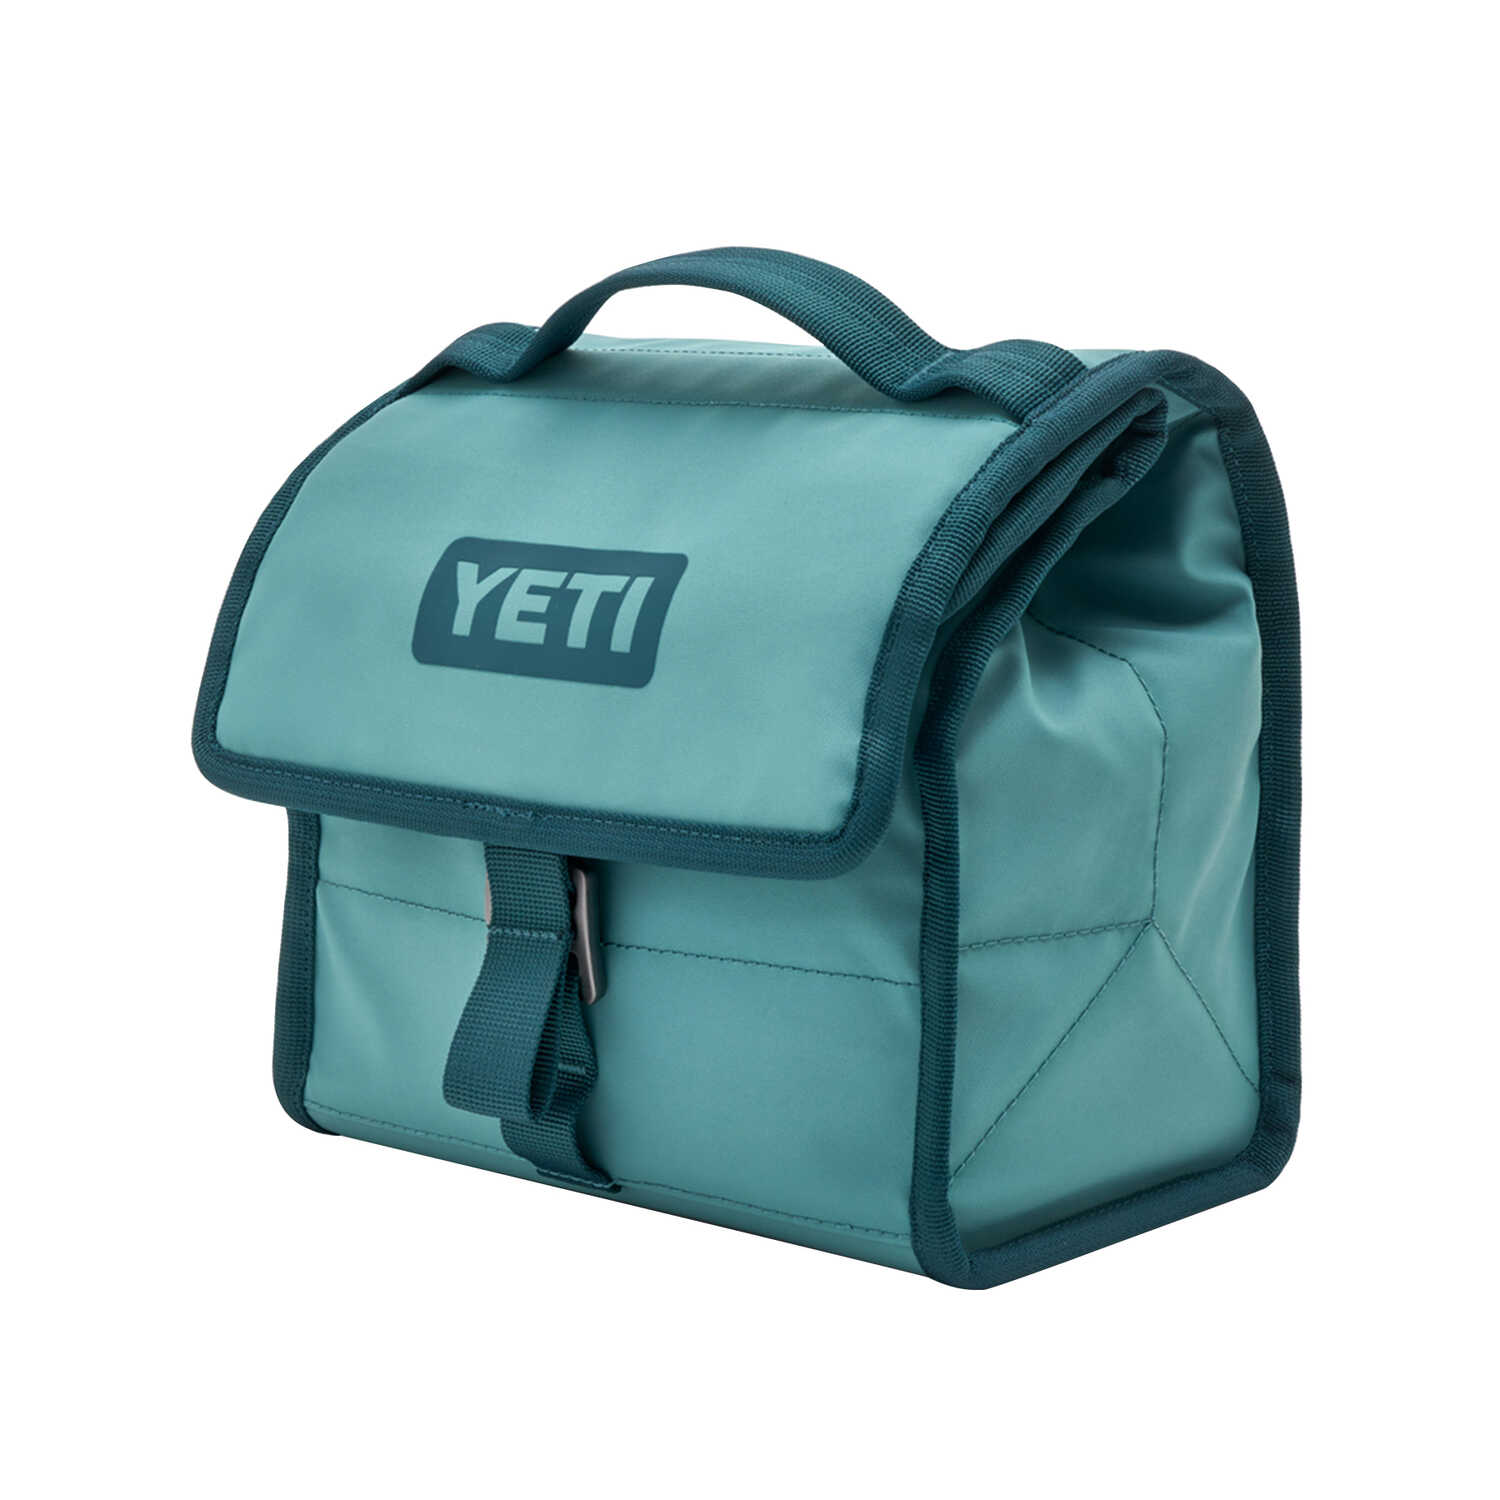 YETI  Daytrip  Lunch Box Cooler  River Green